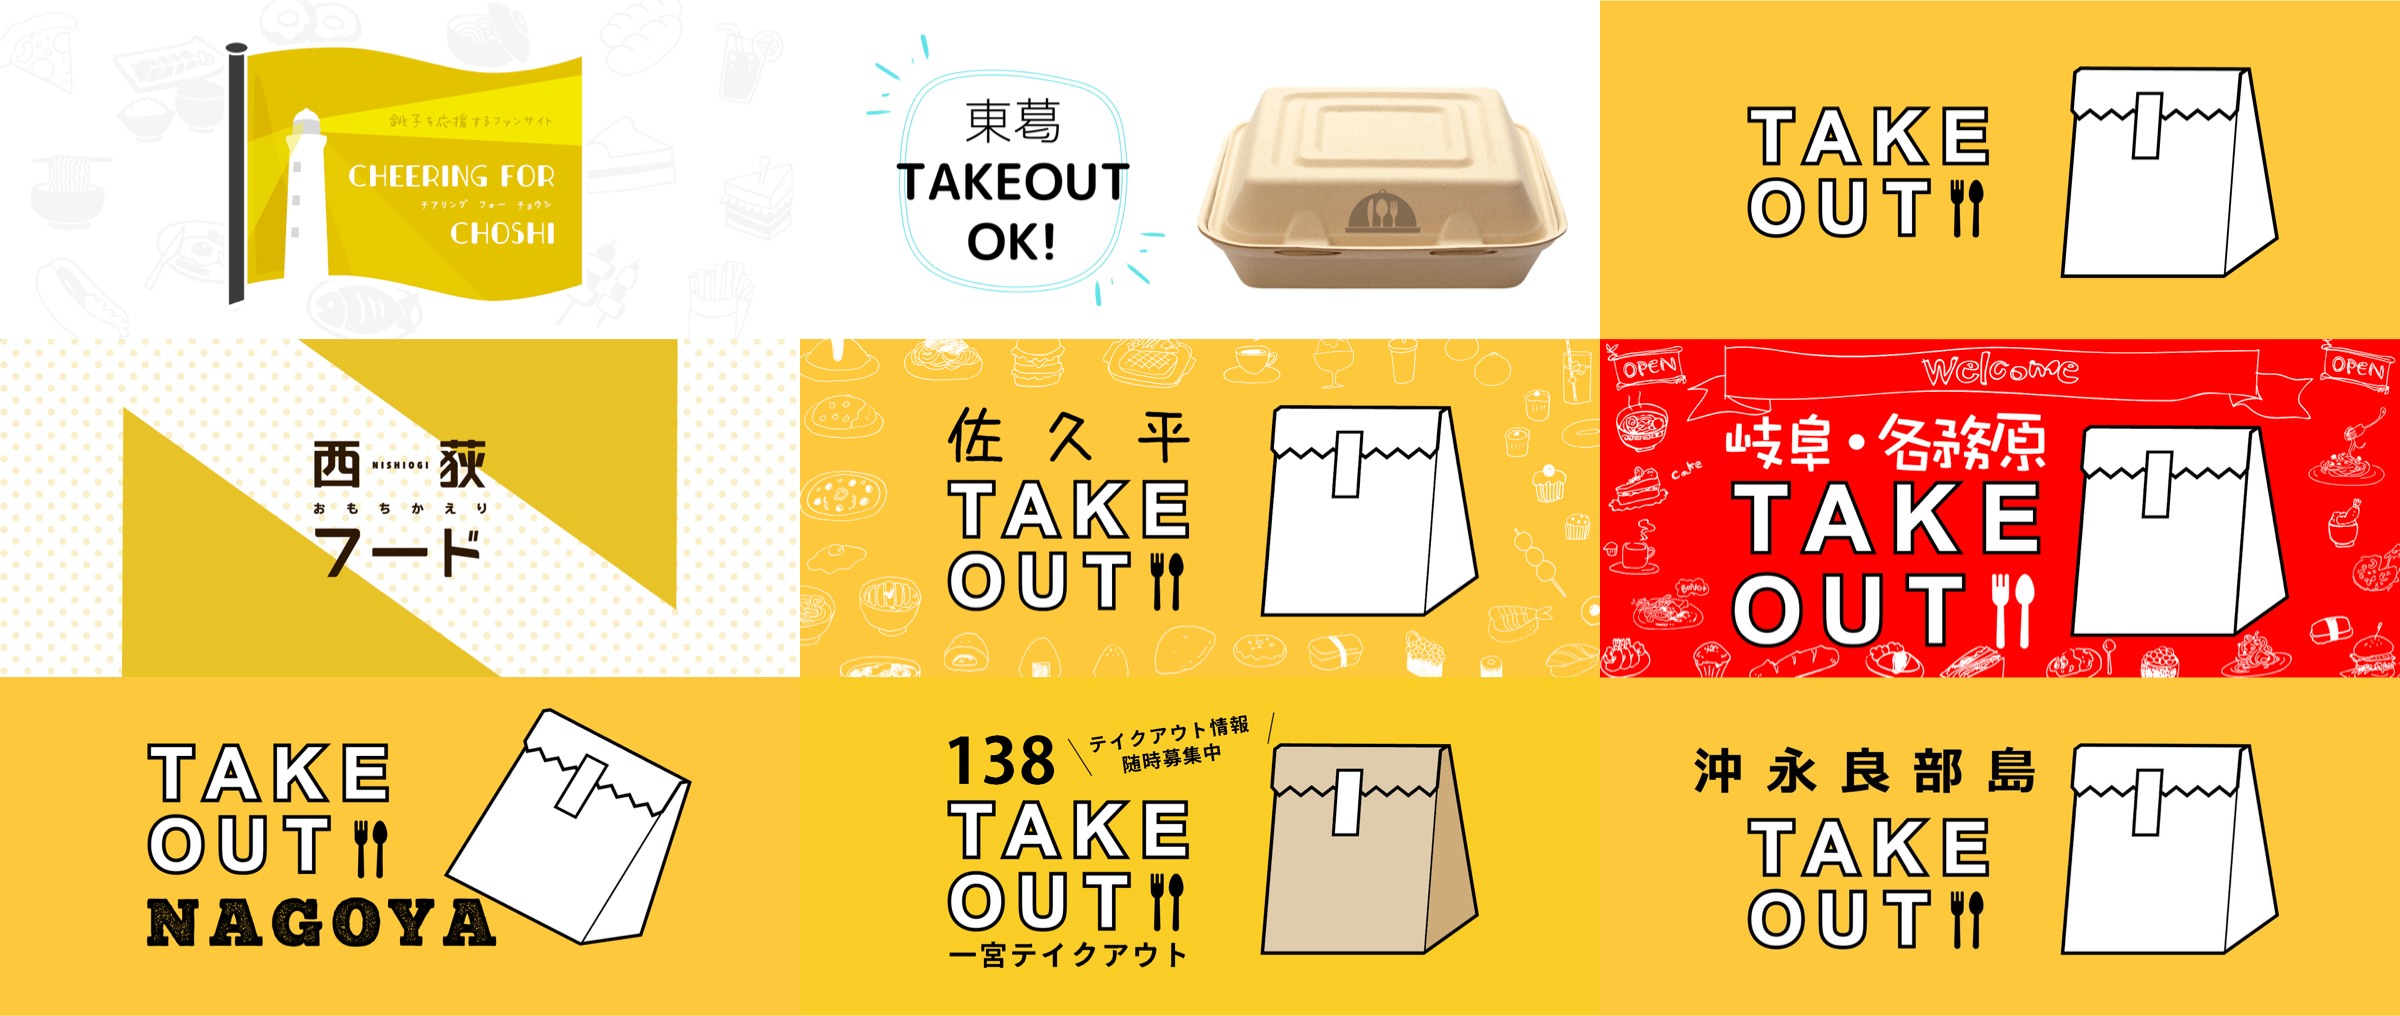 takeout_portal_sites.png